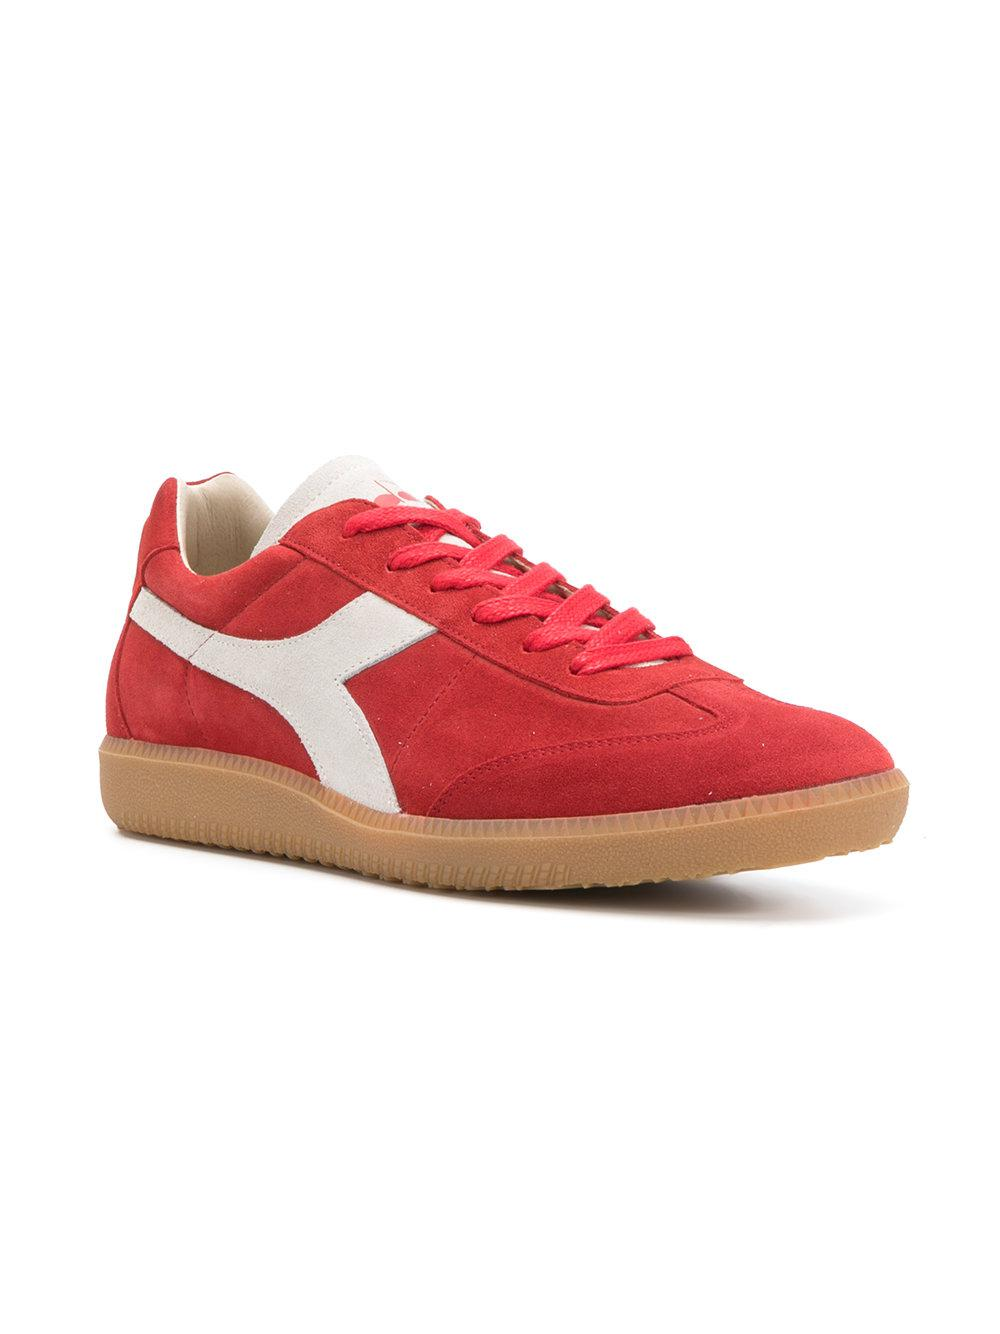 Diadora Football 80s Core 3 sneakers footlocker sale online clearance sneakernews buy cheap real cheap sale manchester great sale DorU4eWao6